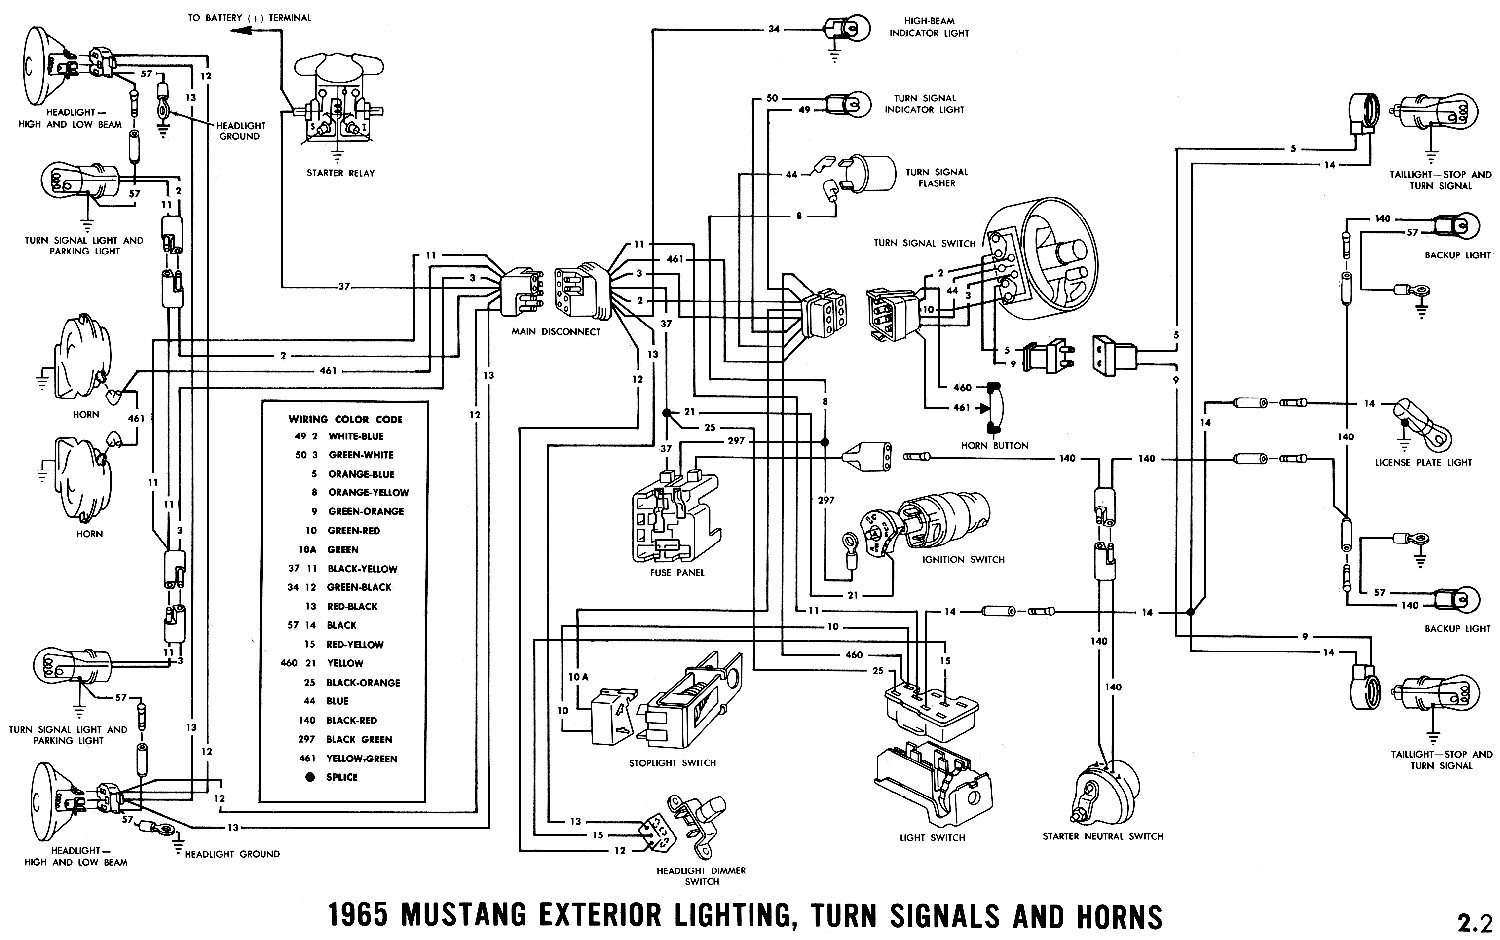 1965 Mustang Wiring Diagrams Average Joe Restoration Chevy Truck Distributor Headlamps